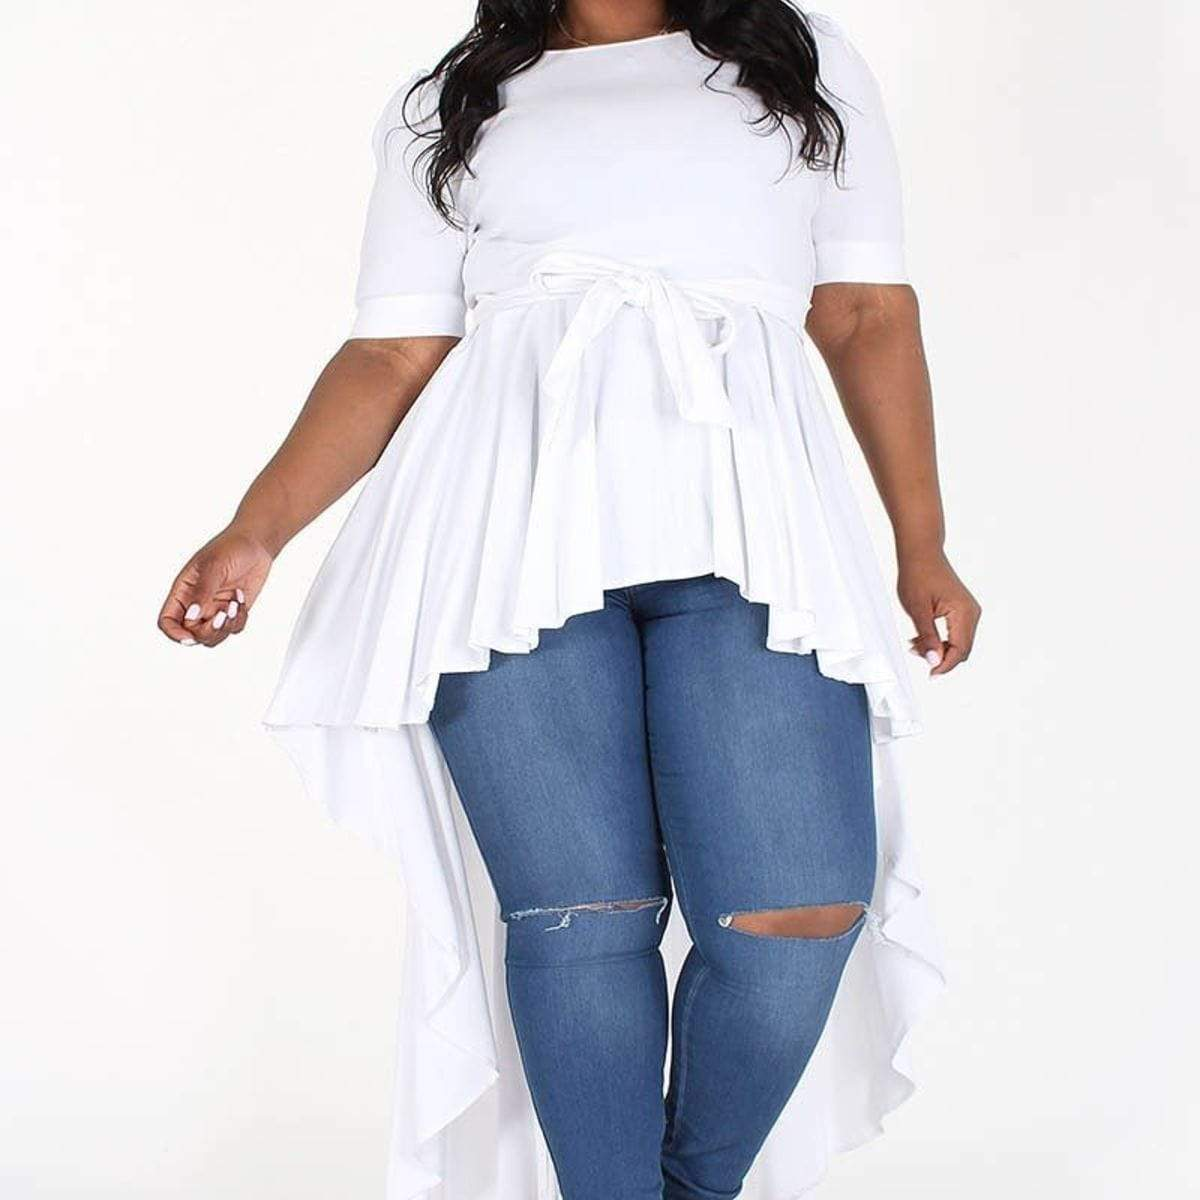 PLUS SIZE Empire Waist Hi-low Top with Bow Detail and Ruffle Trim